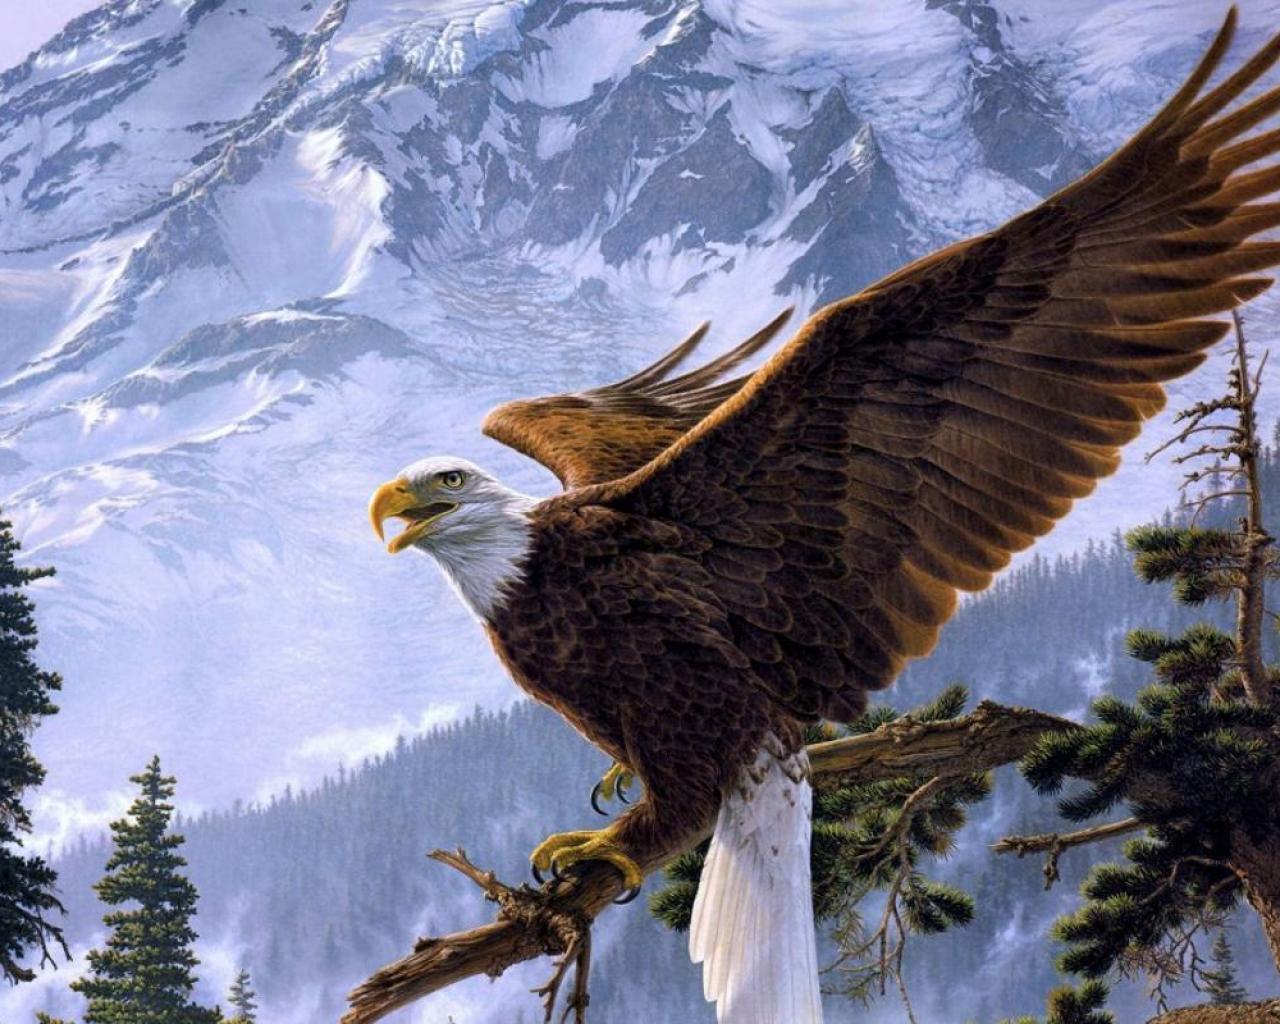 eagle 1280x1024 wallpaper - photo #20